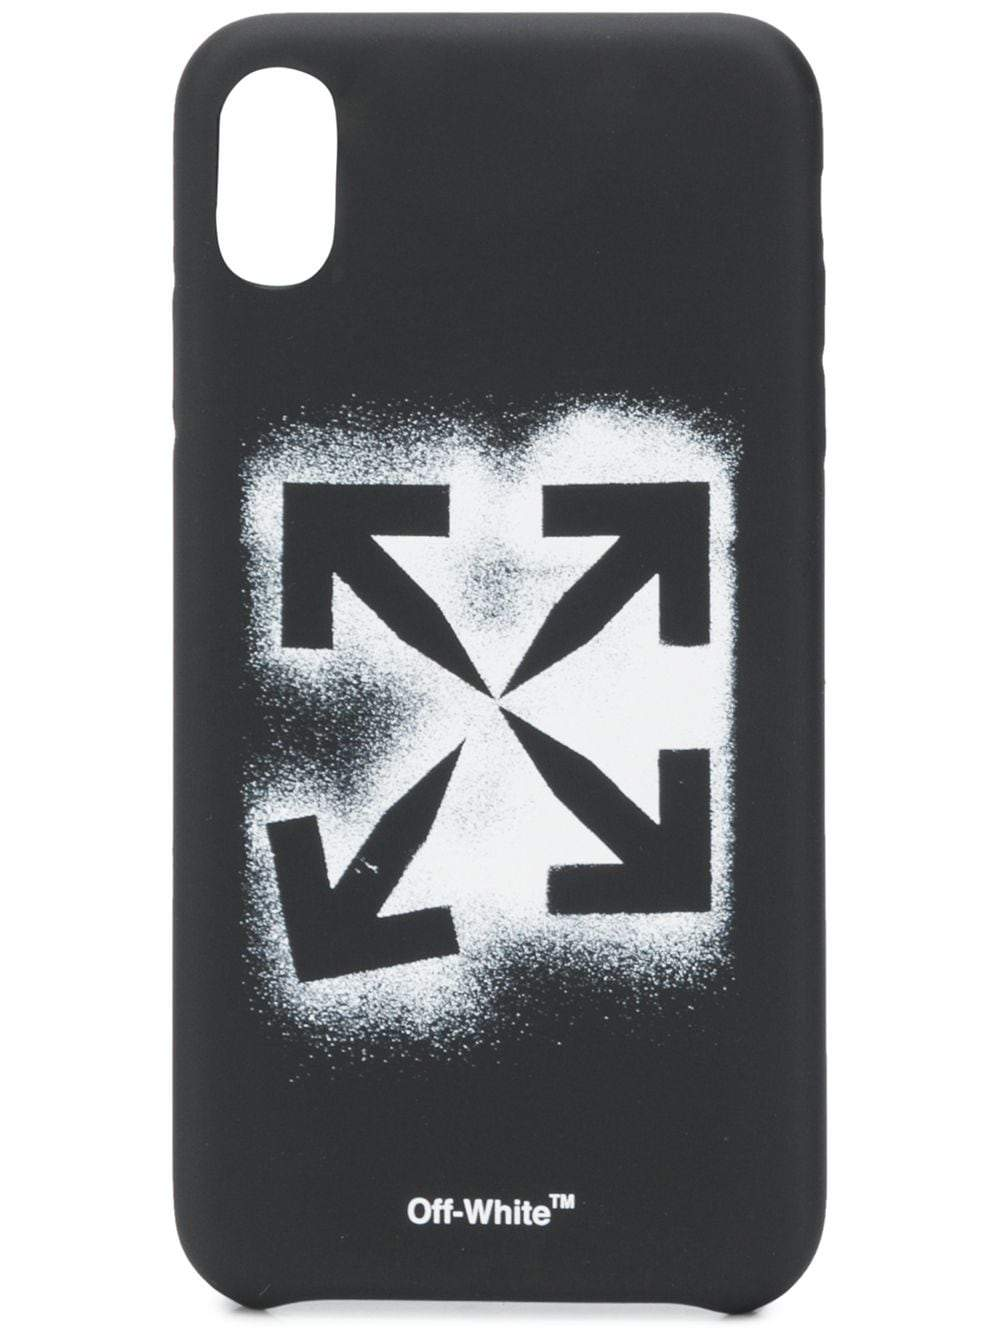 OFF-WHITE stencil iPhone XS MAX case black